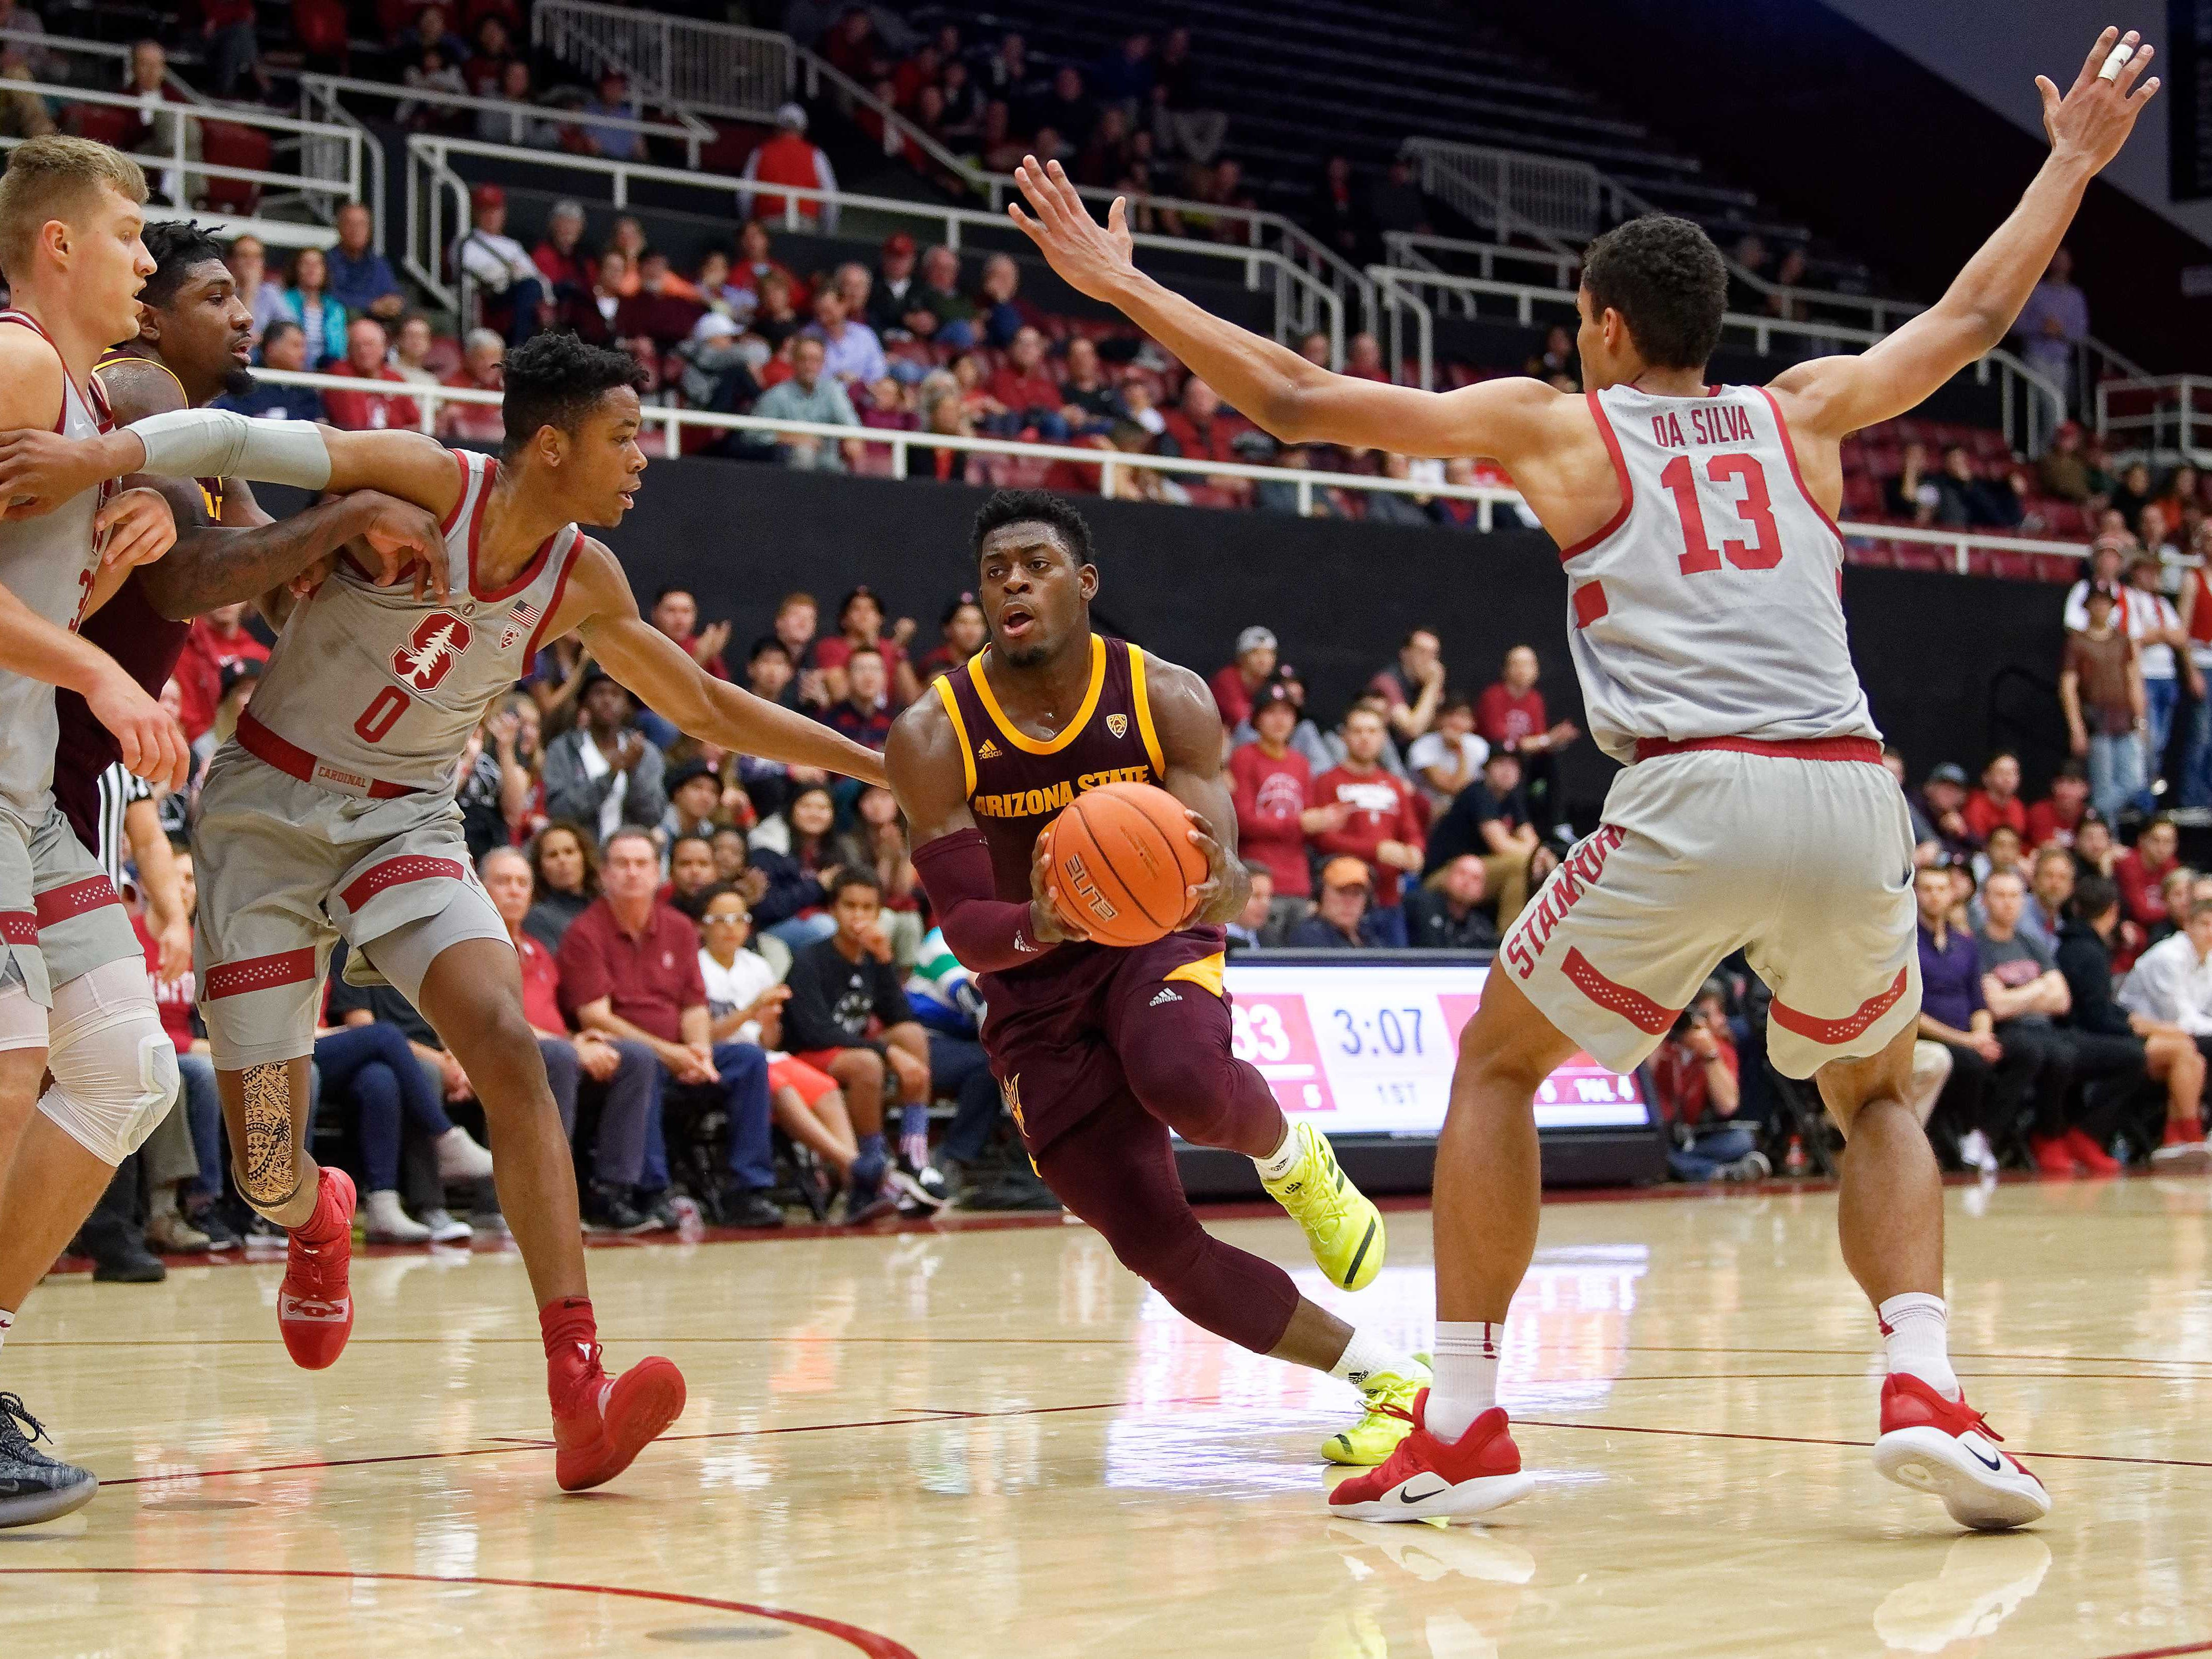 Jan 12, 2019; Stanford, CA, USA; Arizona State Sun Devils guard Luguentz Dort (0) drives to the basket during the first half of the Stanford Cardinal vs Arizona State Sun Devils basketball game at Maples Pavilion. Mandatory Credit: Robert Edwards-USA TODAY Sports